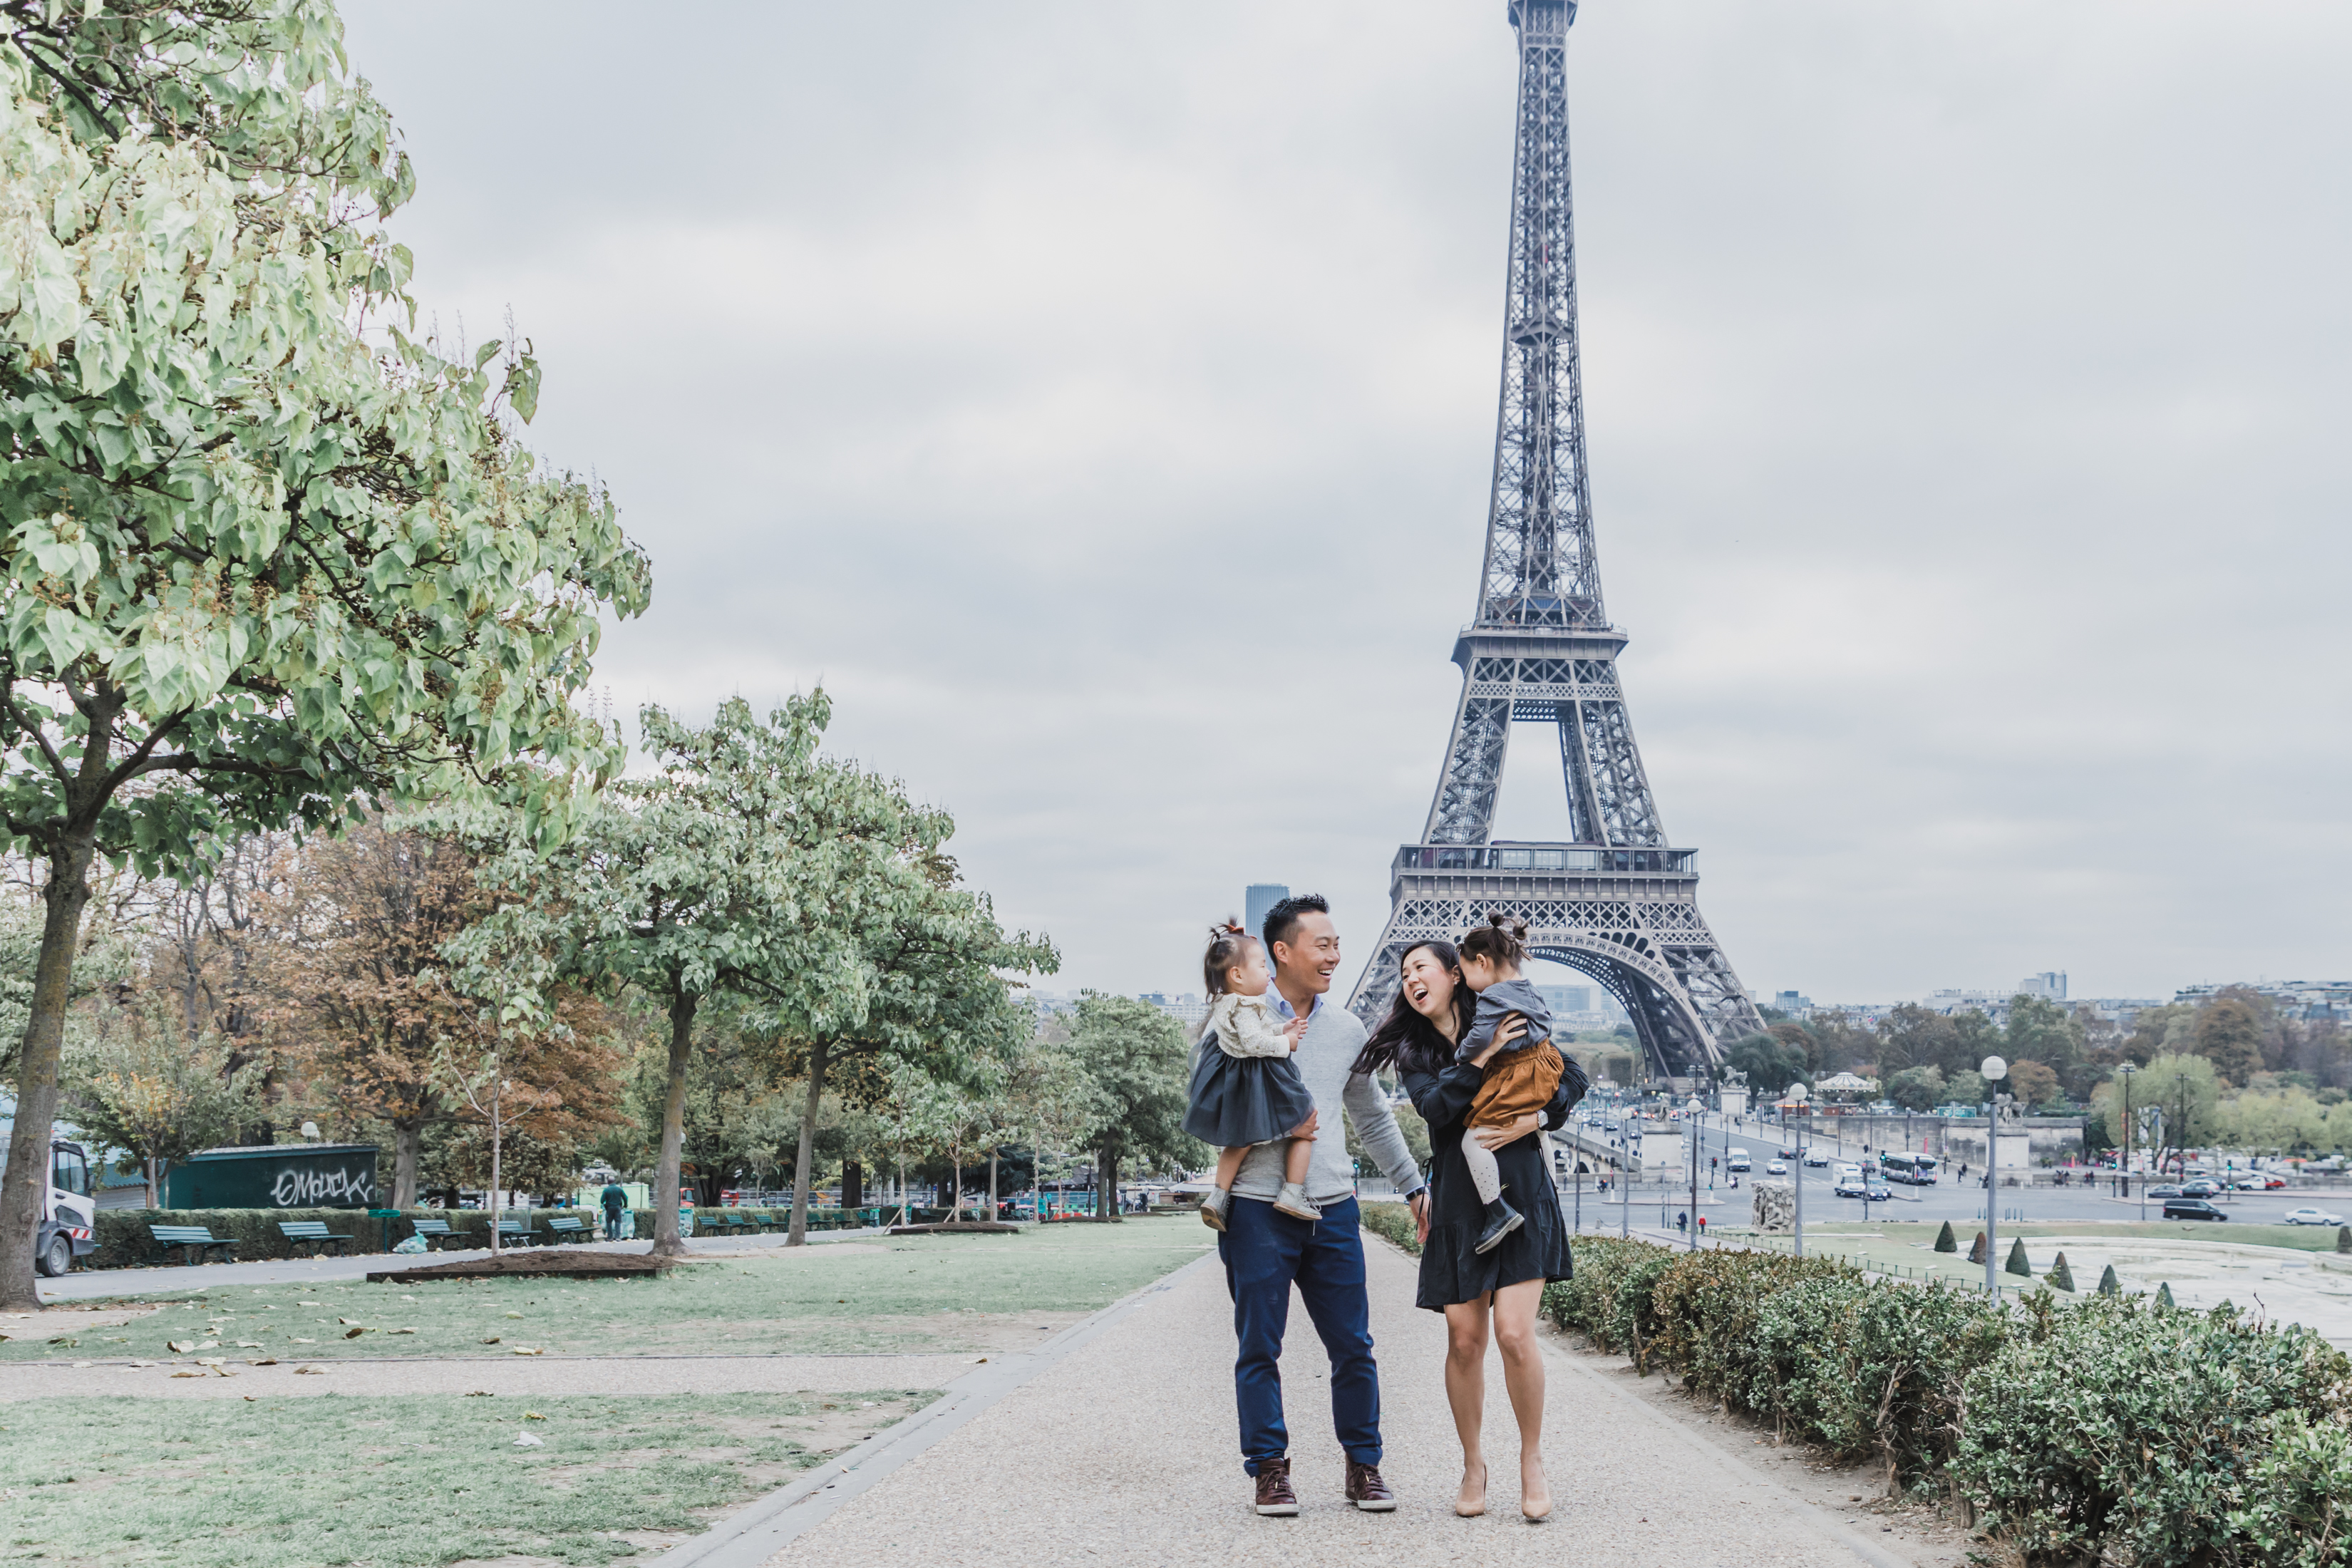 Family of four in front of the Eiffel Tower in Paris, France